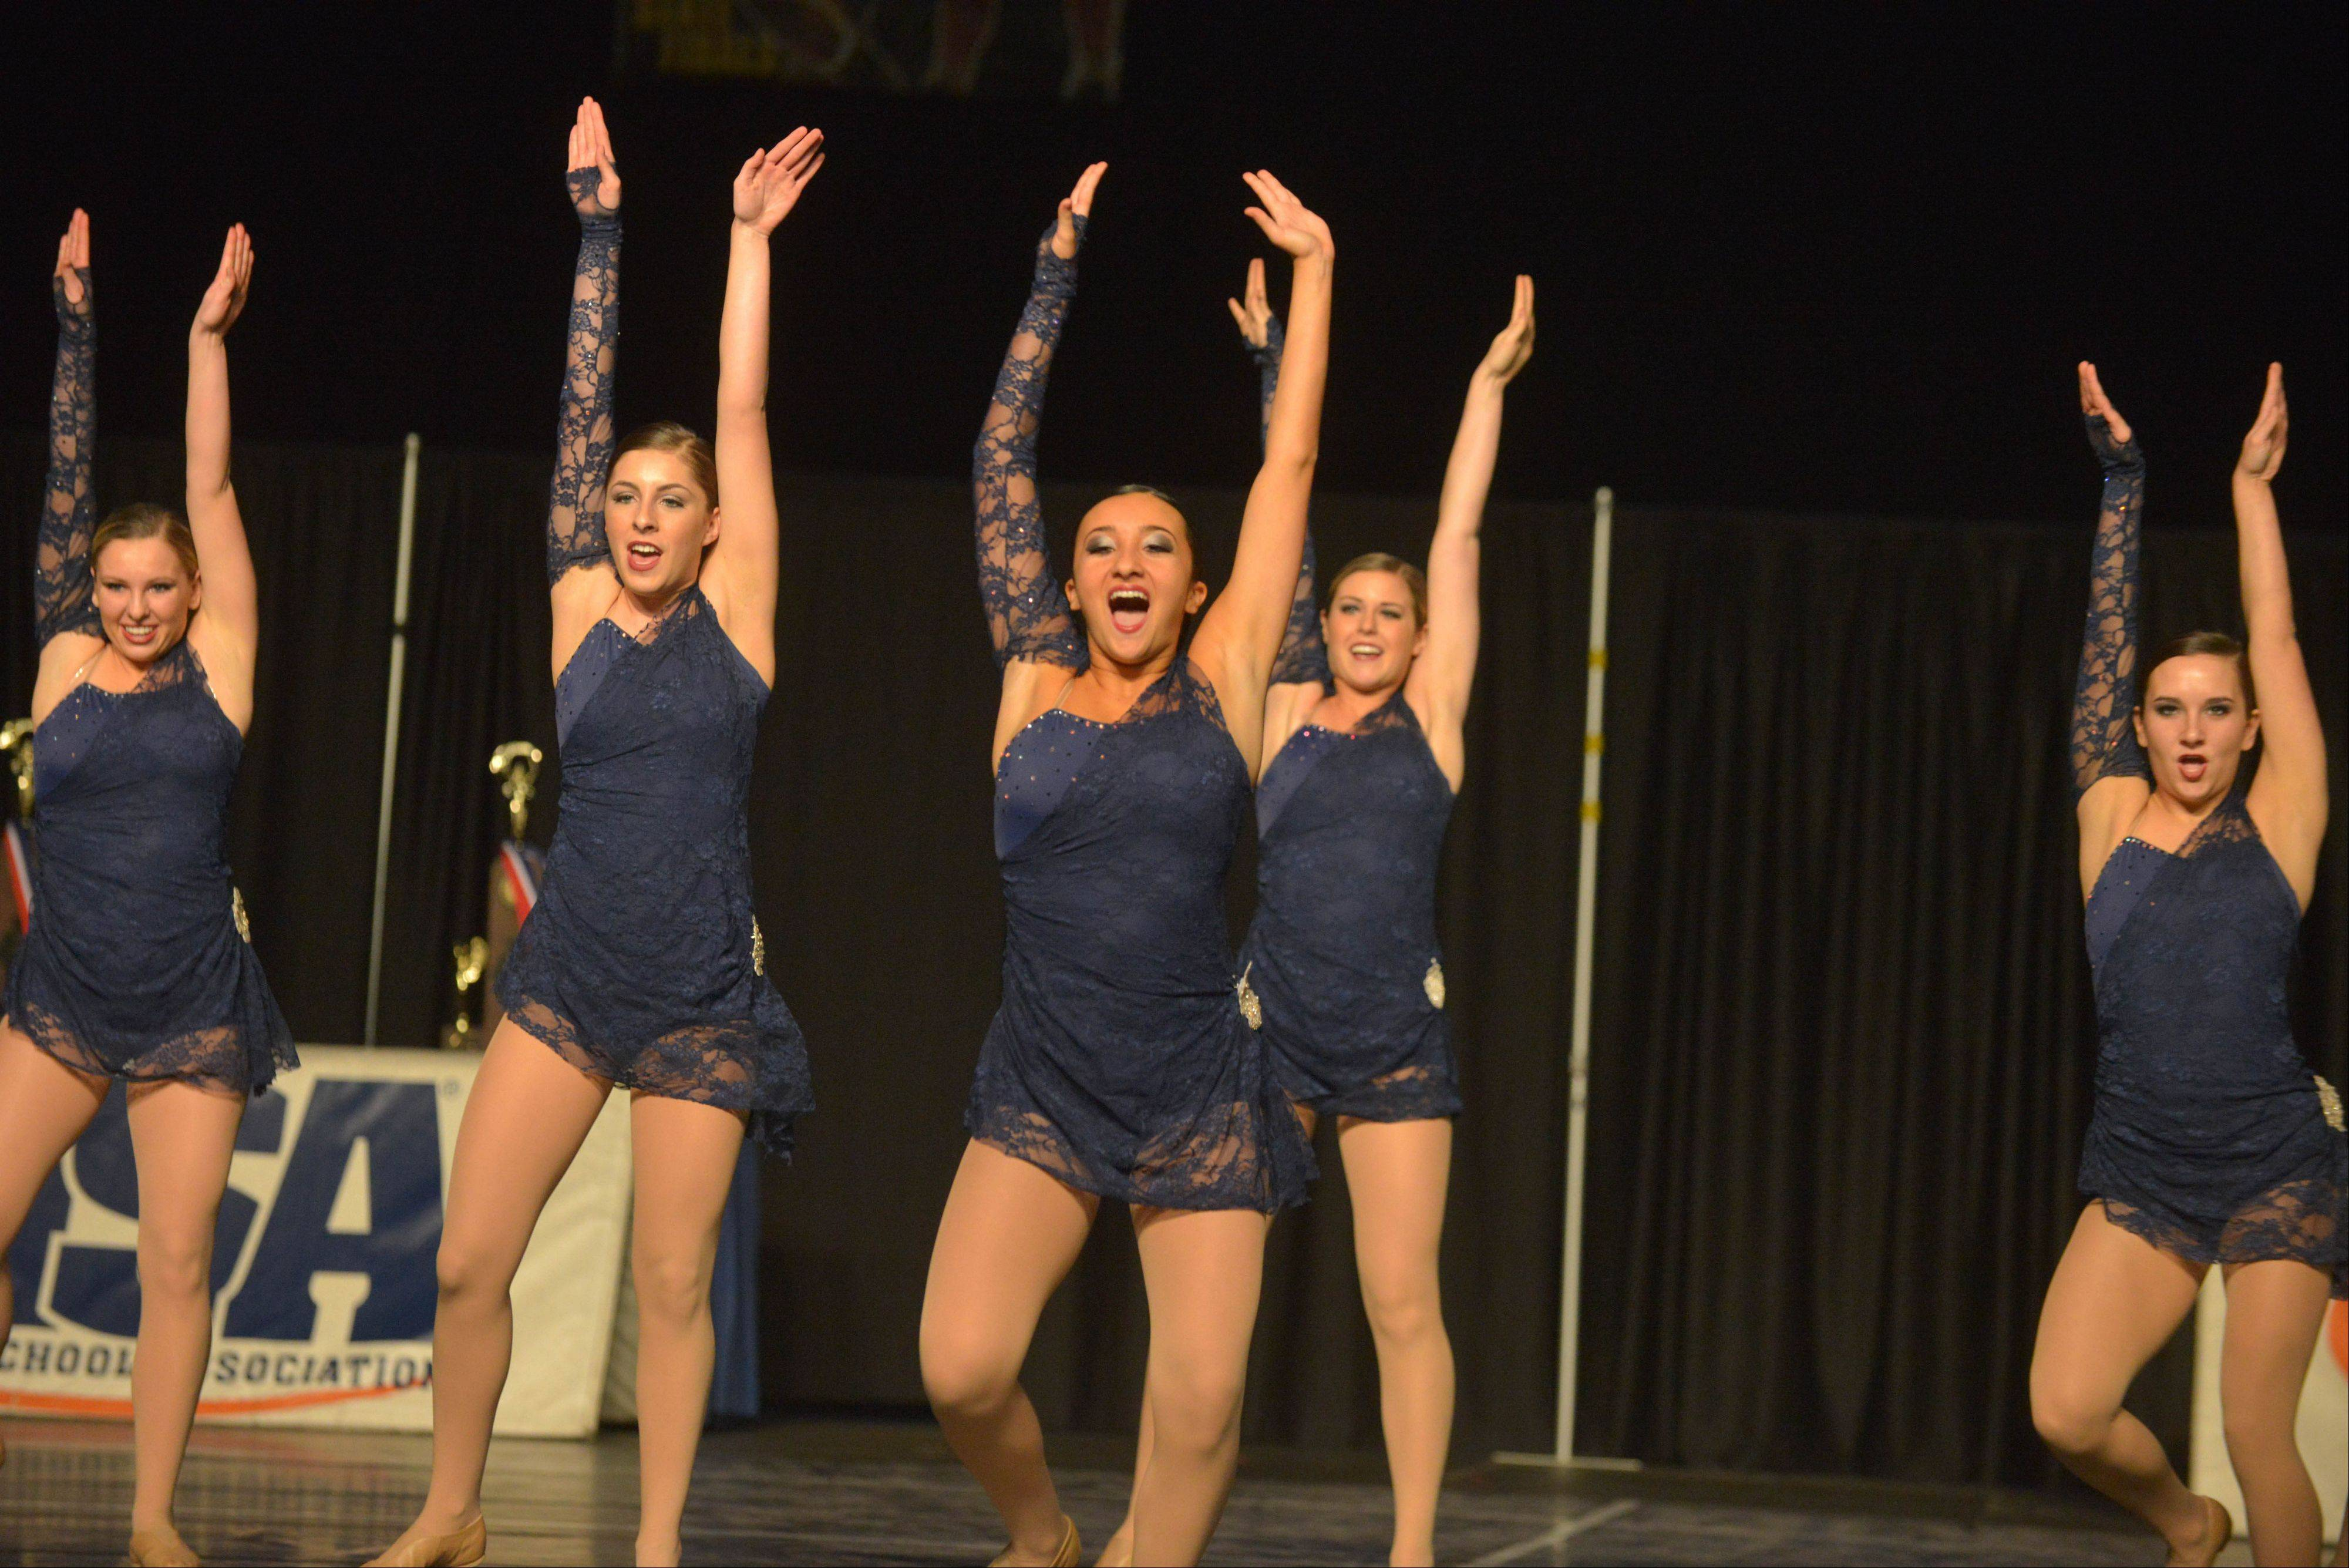 The Neuqua Valley dance team takes part in the Competitive Dance preliminary round Friday at U.S. Cellular Coliseum in Bloomington.